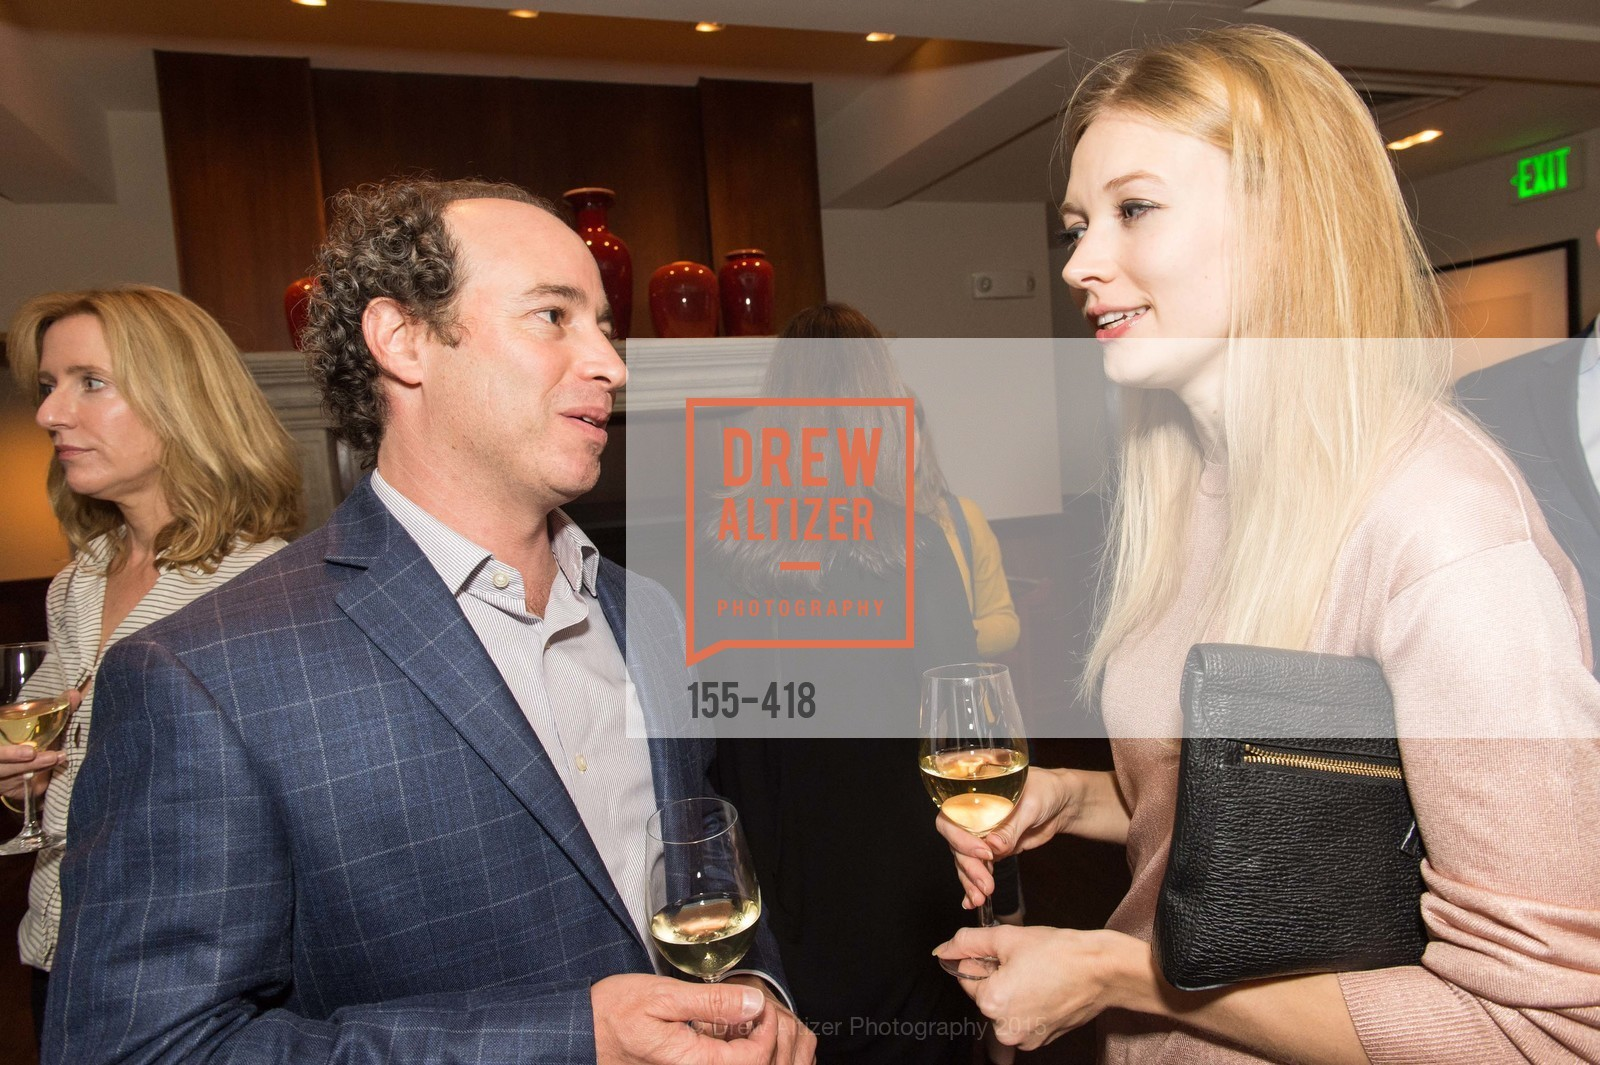 Jason Linetzky, Elena Soboleva, Artsy and Sotheby's Village Pub Dinner, Village Pub, October 27th, 2015,Drew Altizer, Drew Altizer Photography, full-service agency, private events, San Francisco photographer, photographer california